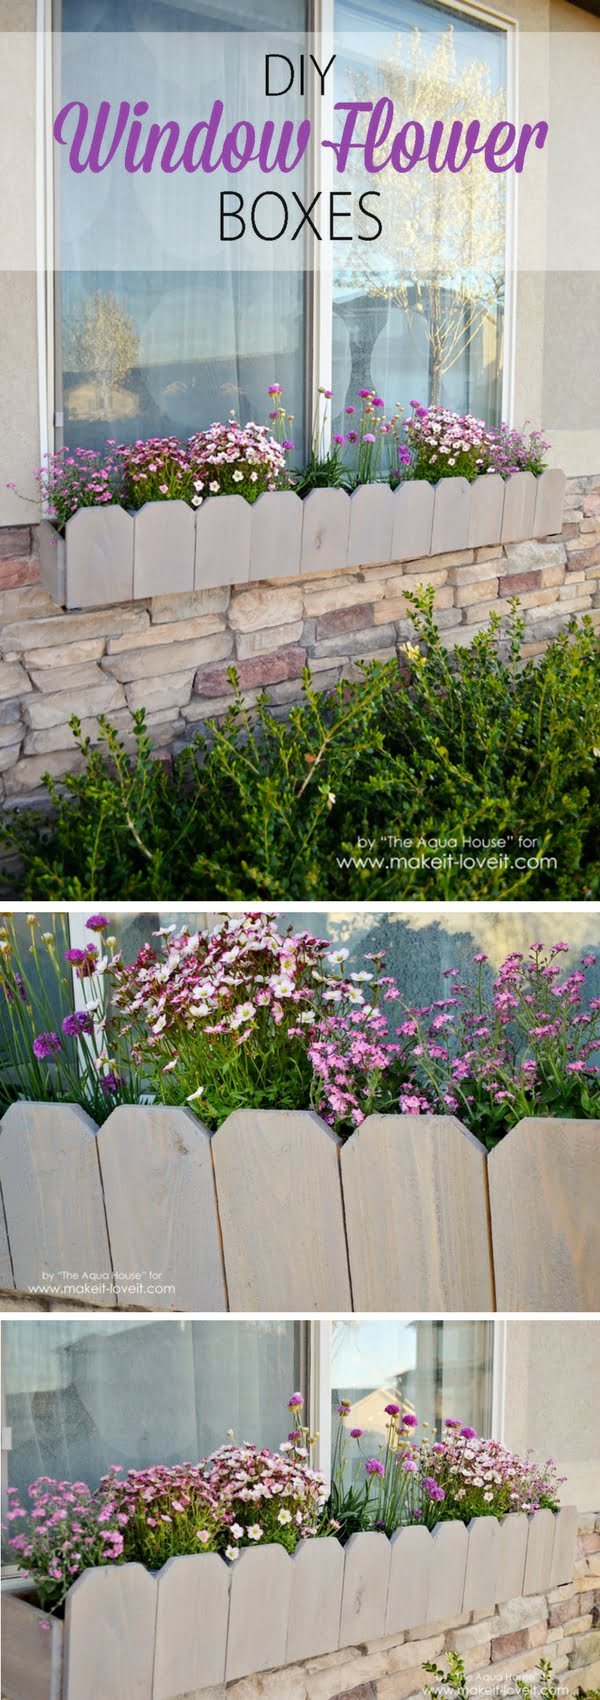 Check out how to build DIY window flower boxes